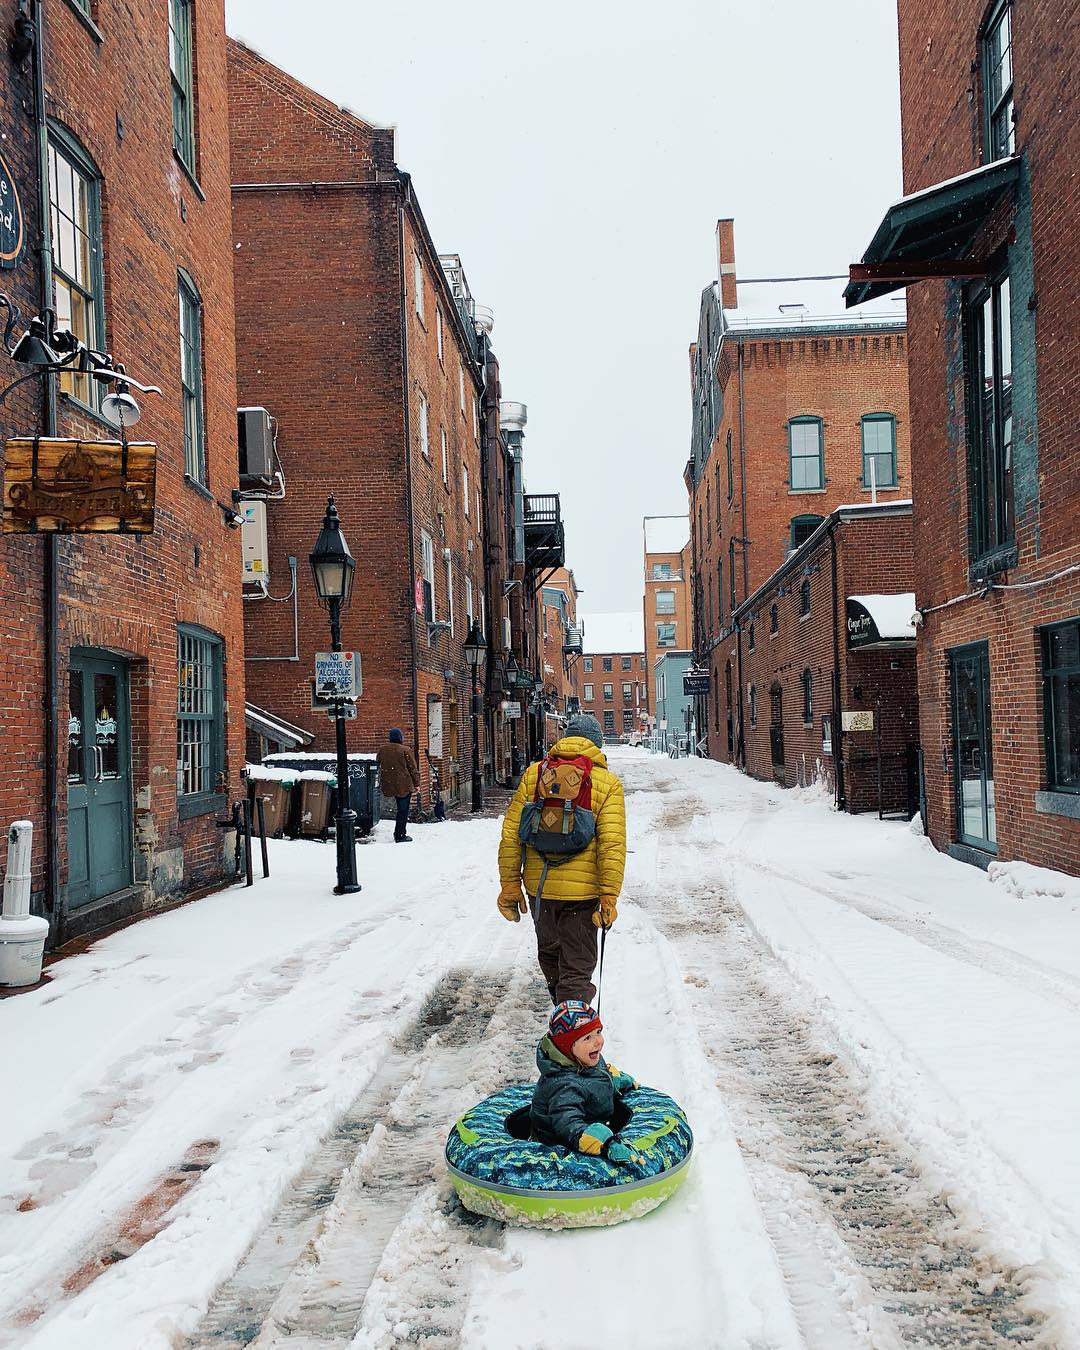 Man in yellow coat pulling a child on a sled through a snowy city street.